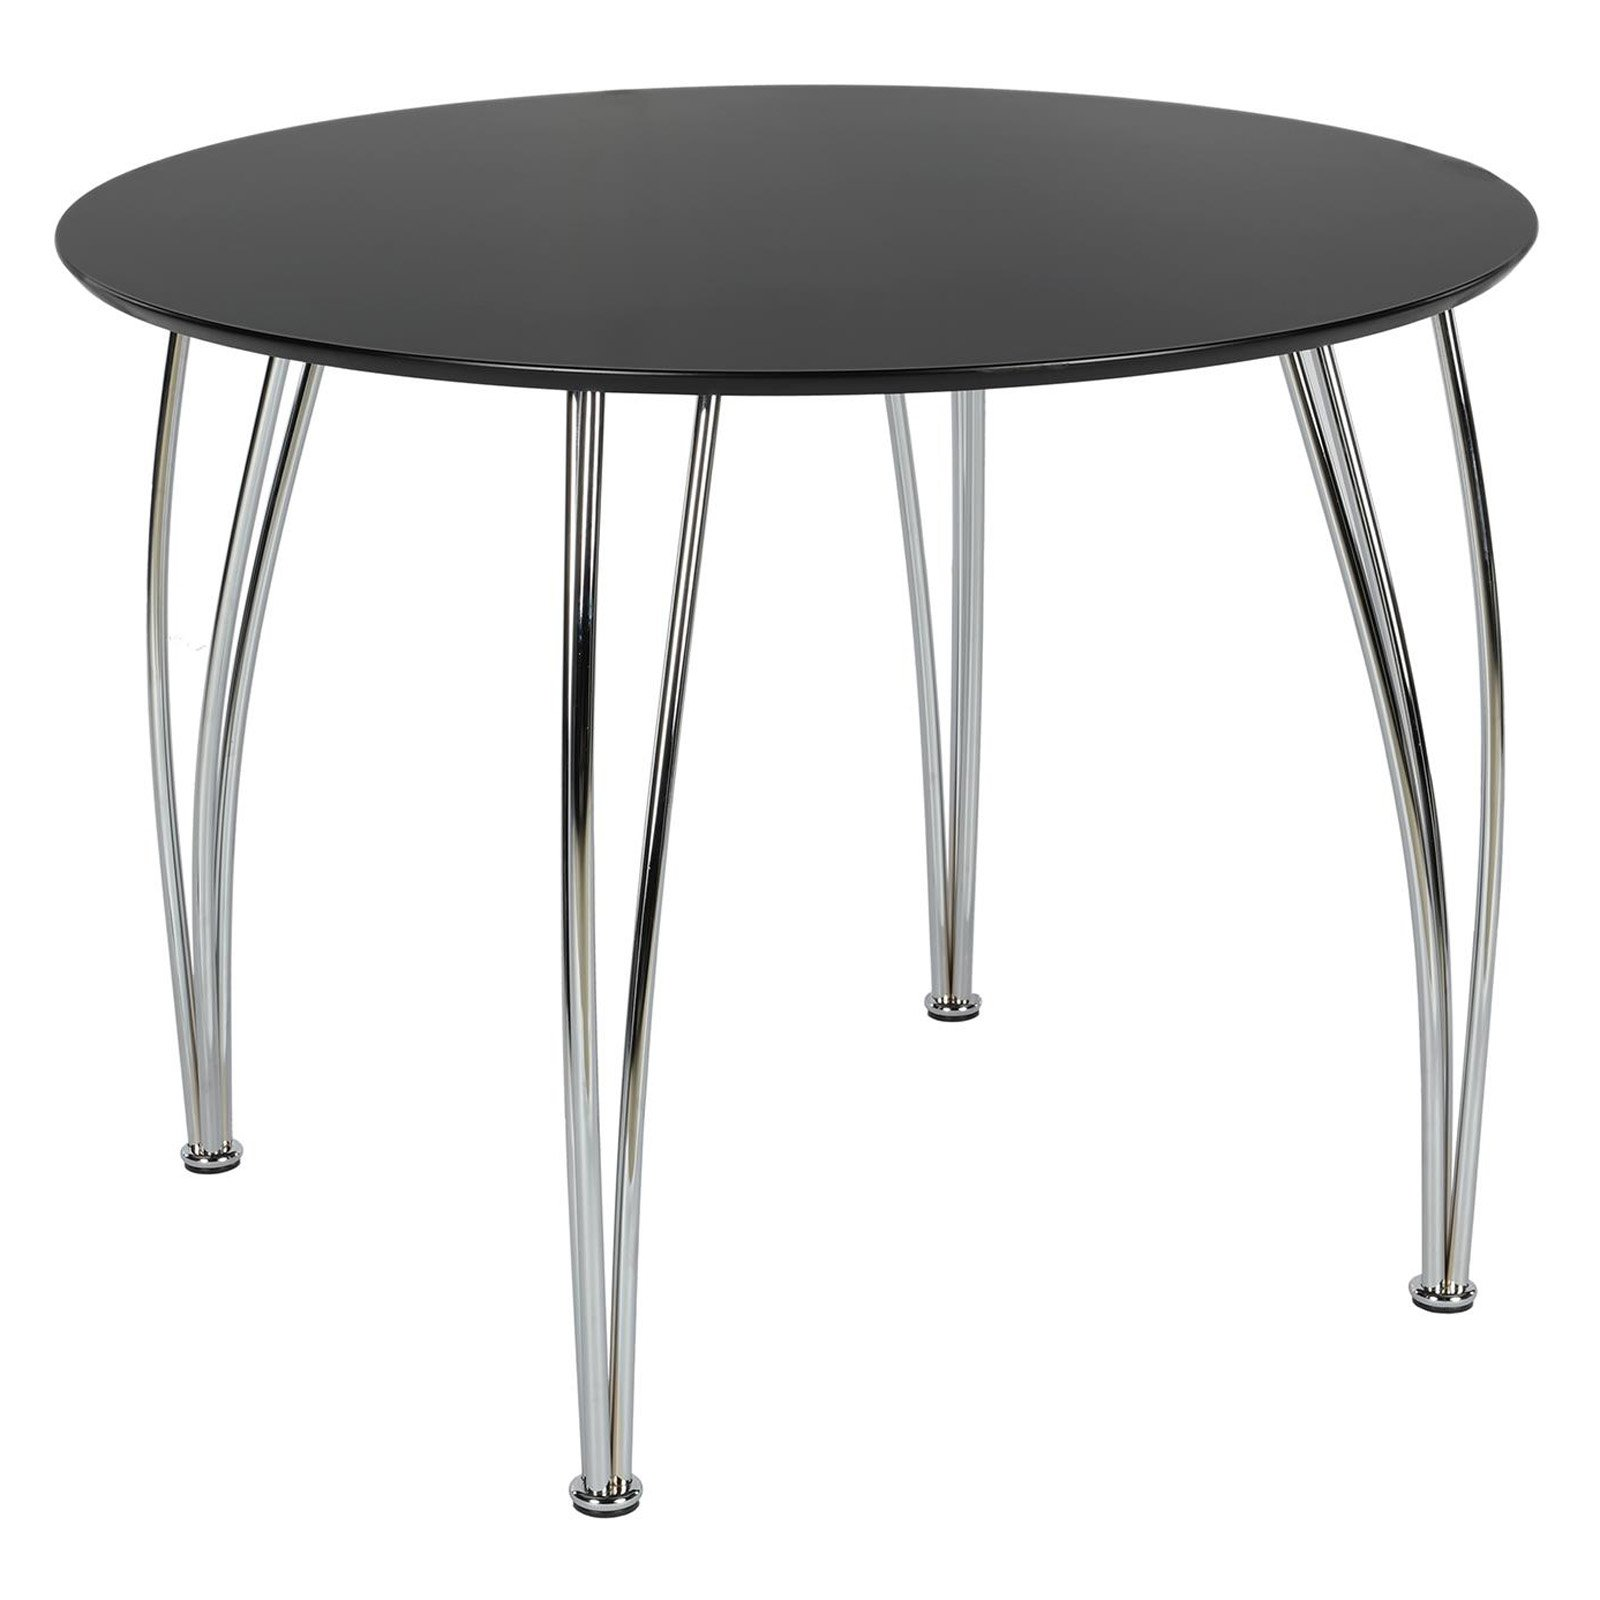 DHP Round Dining Table with Chrome Legs by DHP